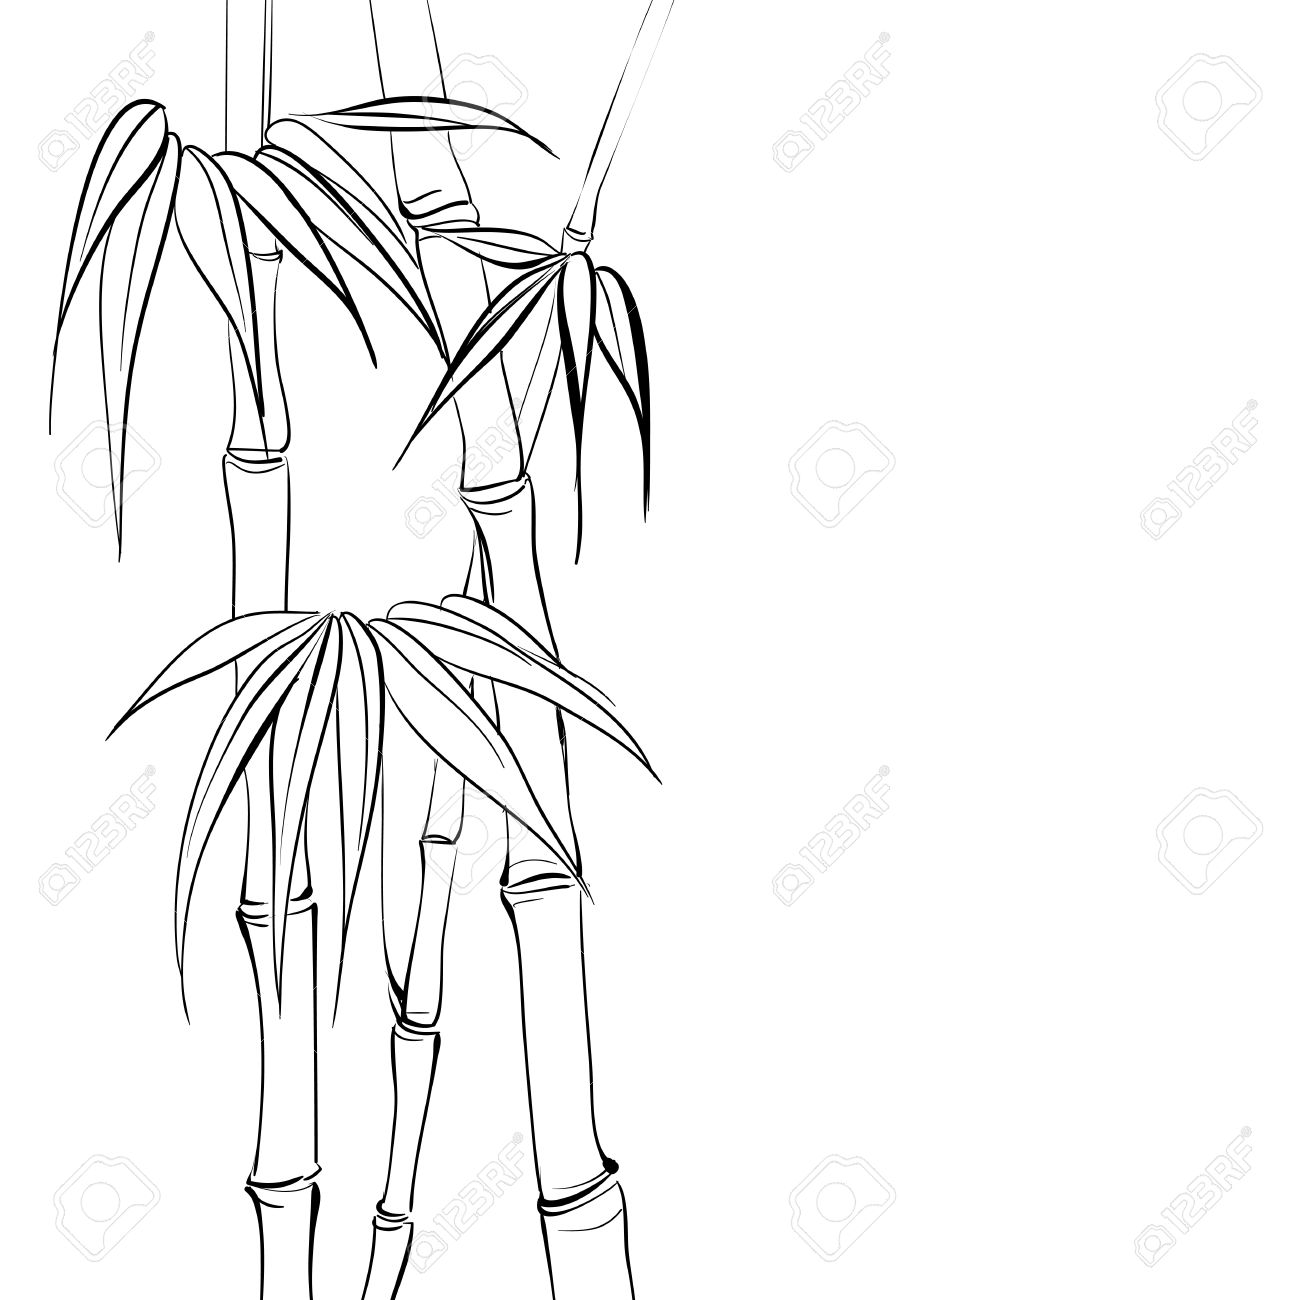 Bamboo clipart black and white.  collection of tree